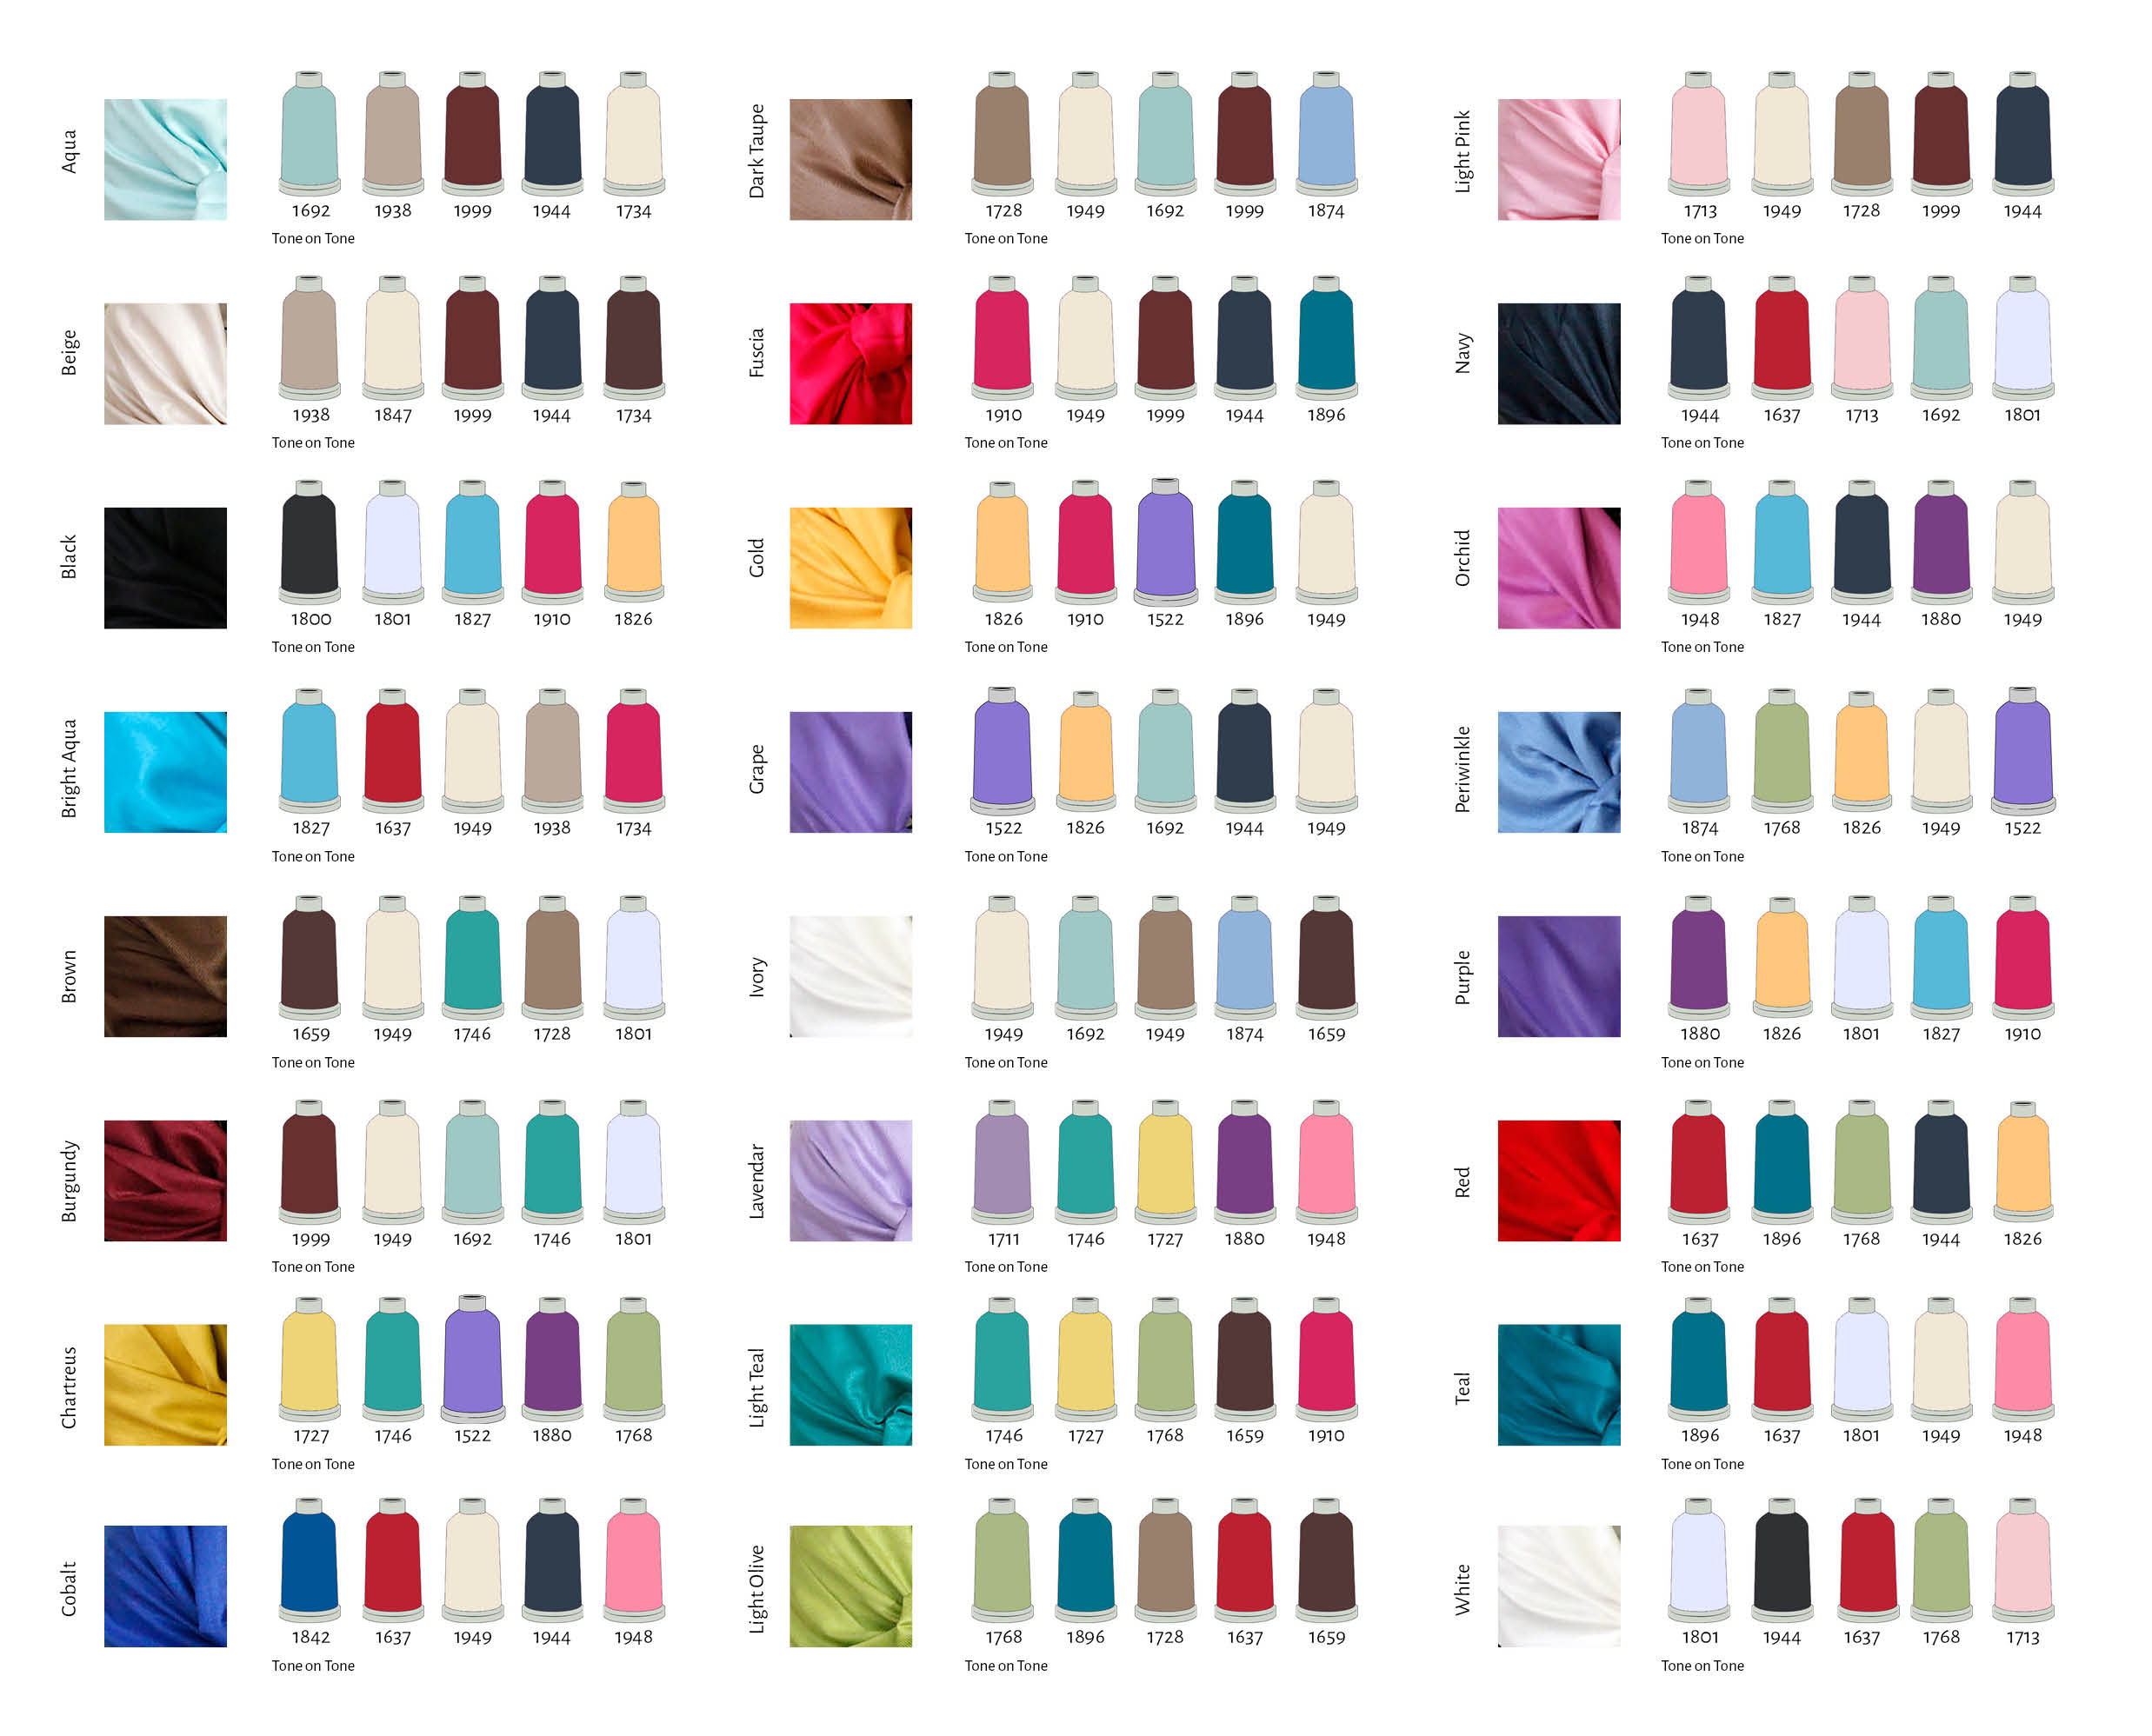 Recommended Thread Color Pashminas.jpg